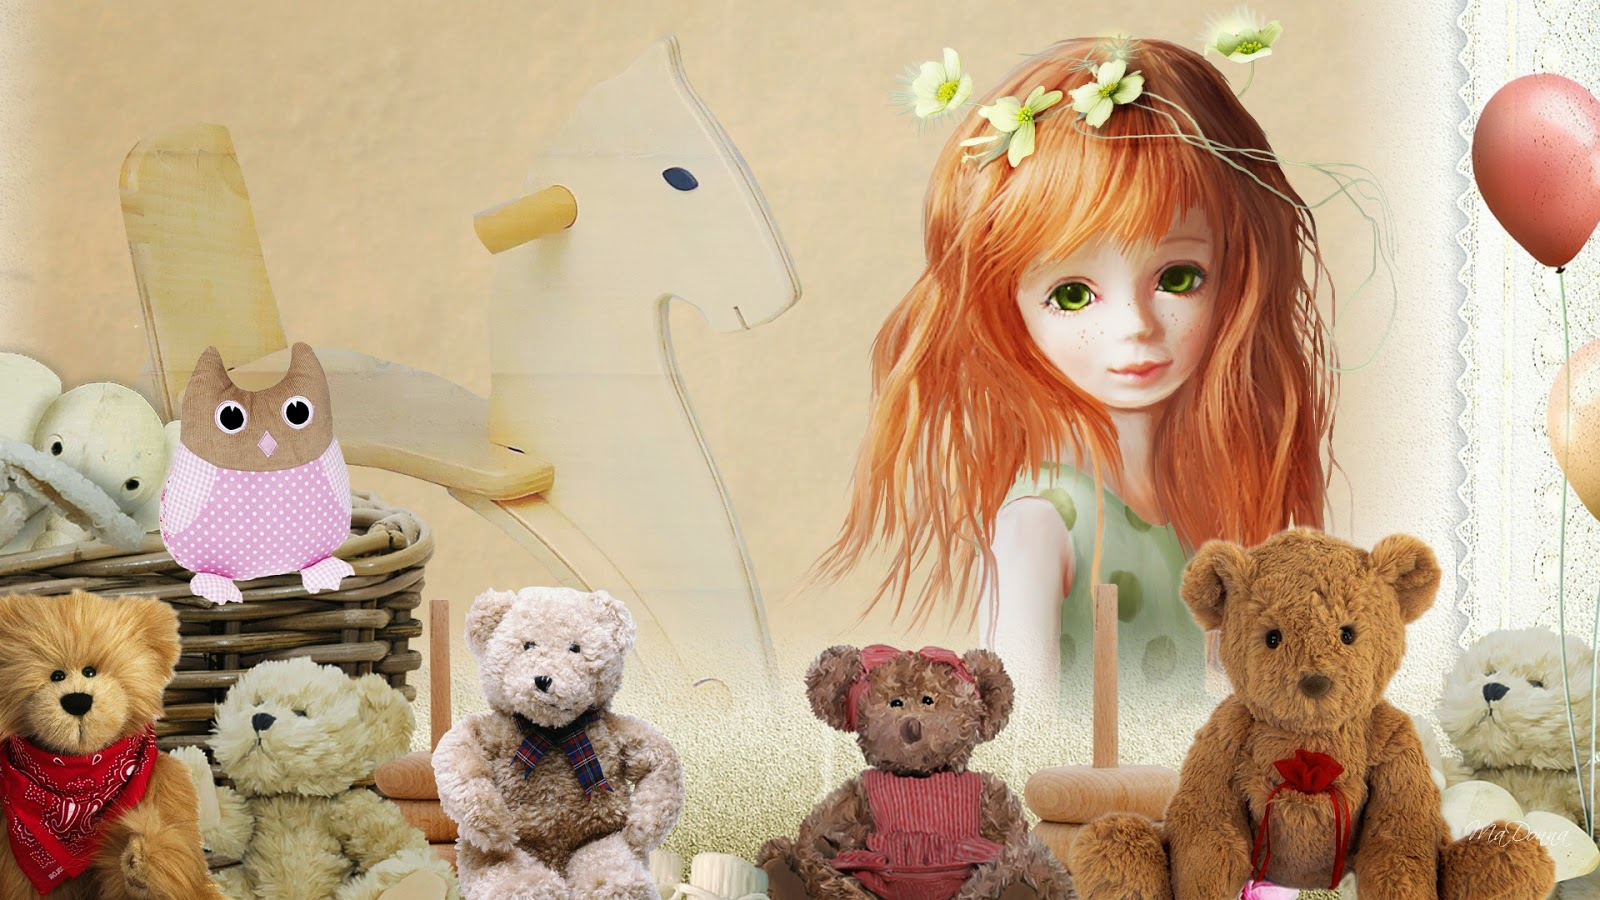 Teddy-bear-cartoon-animated-image-for-girls-kids-1920x1080.jpg